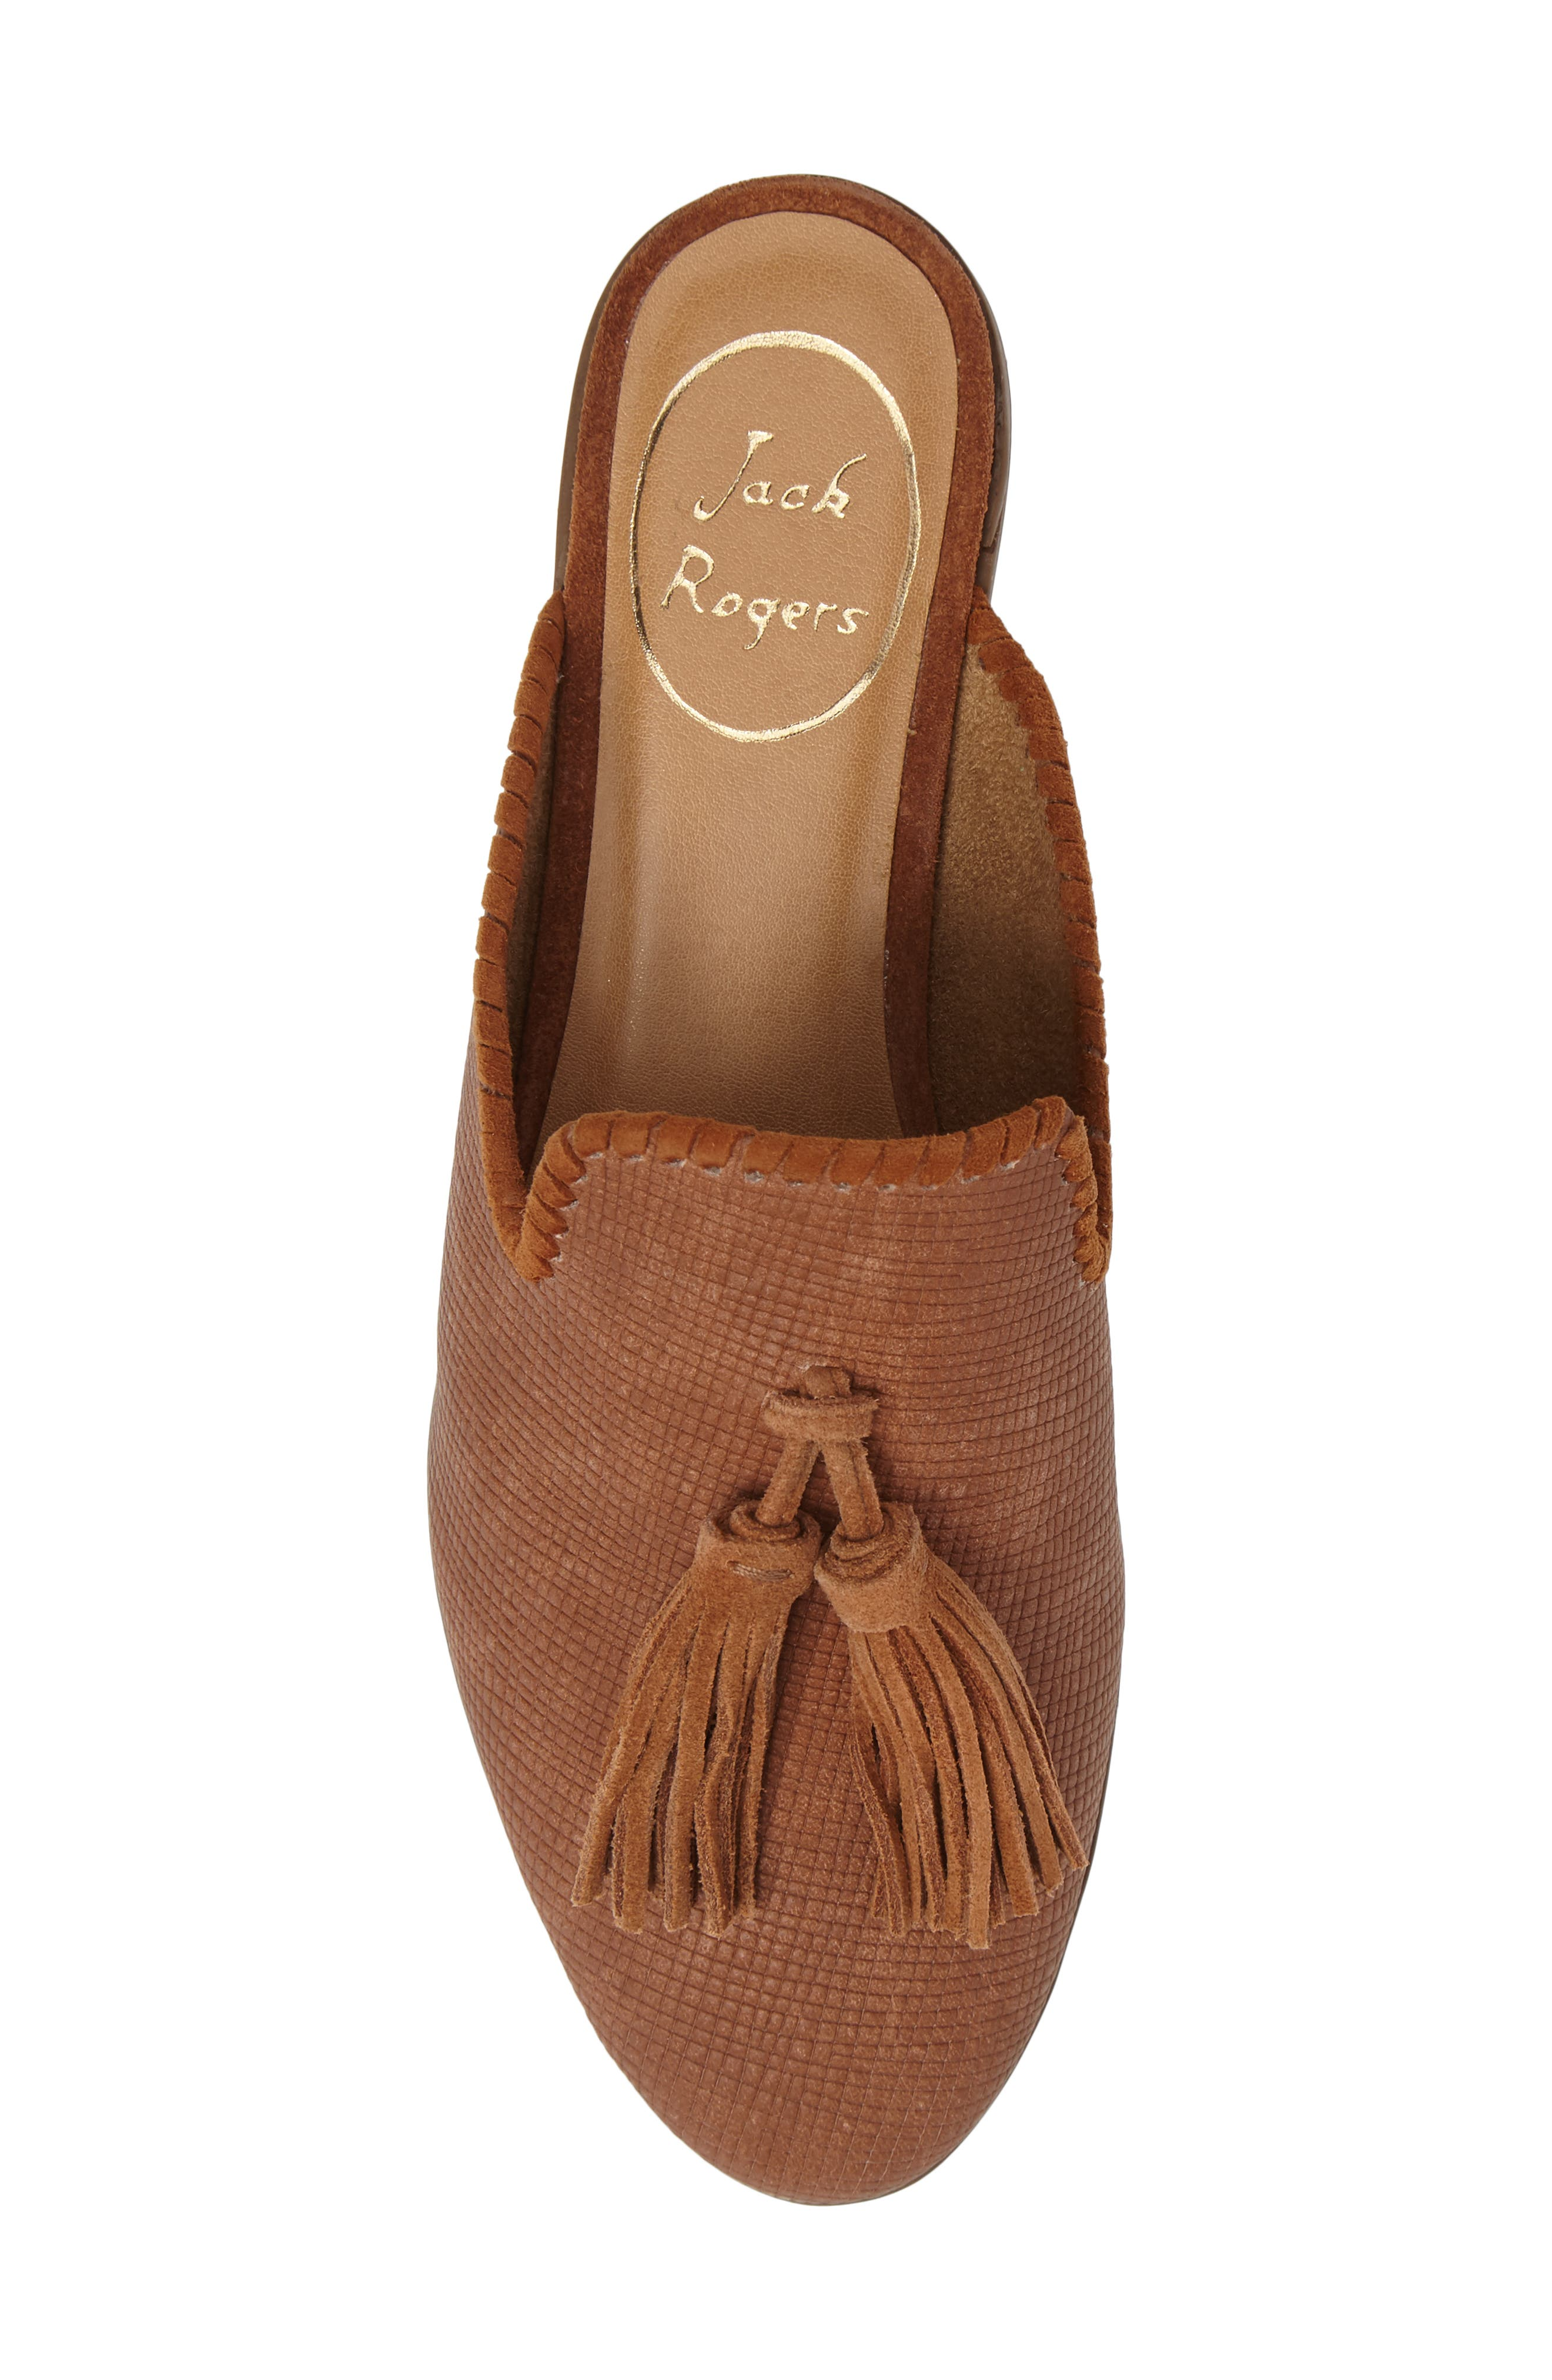 Delaney Tassel Mule,                             Alternate thumbnail 14, color,